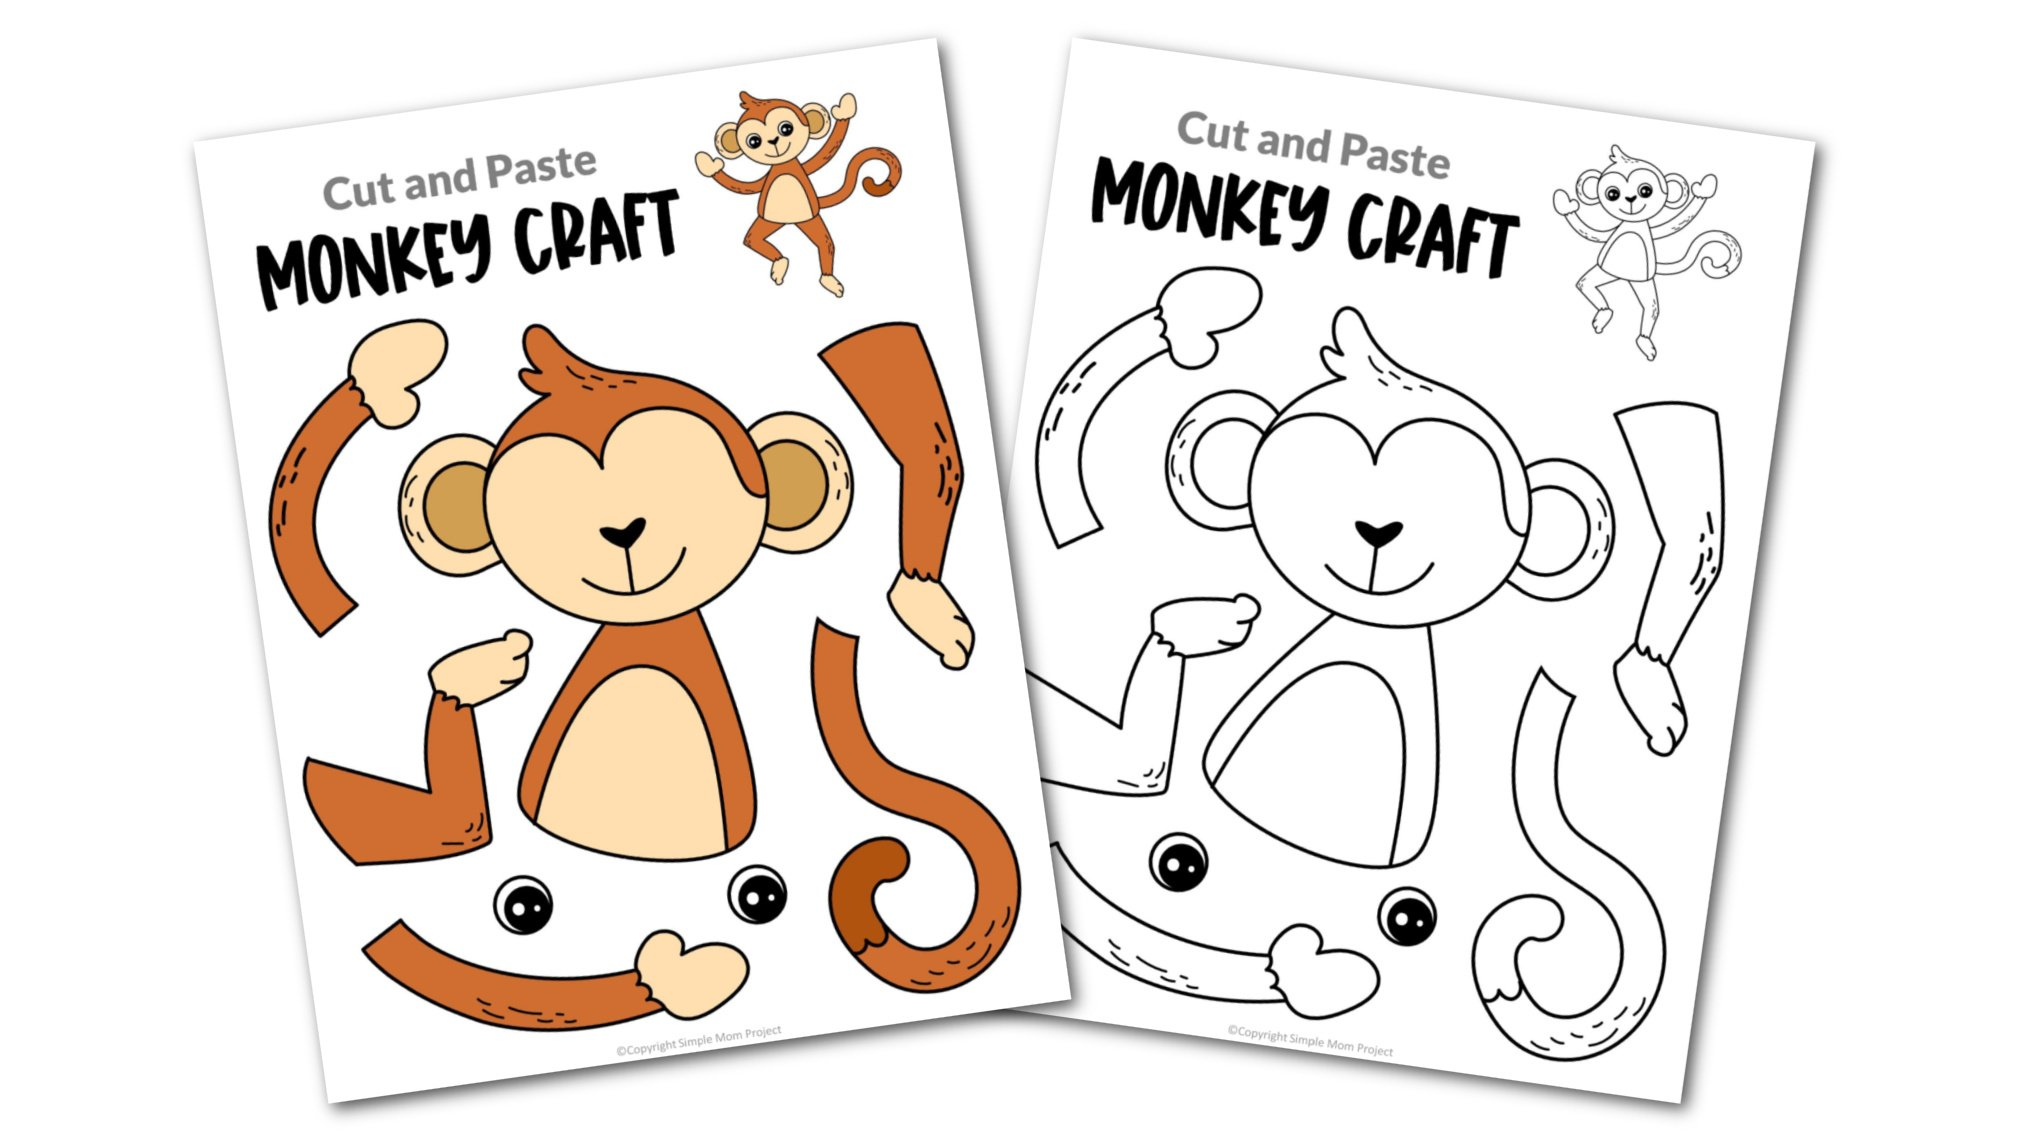 Monkey Cut and Paste Craft for Toddlers, Preschoolers and Kindergarteners Convertkit